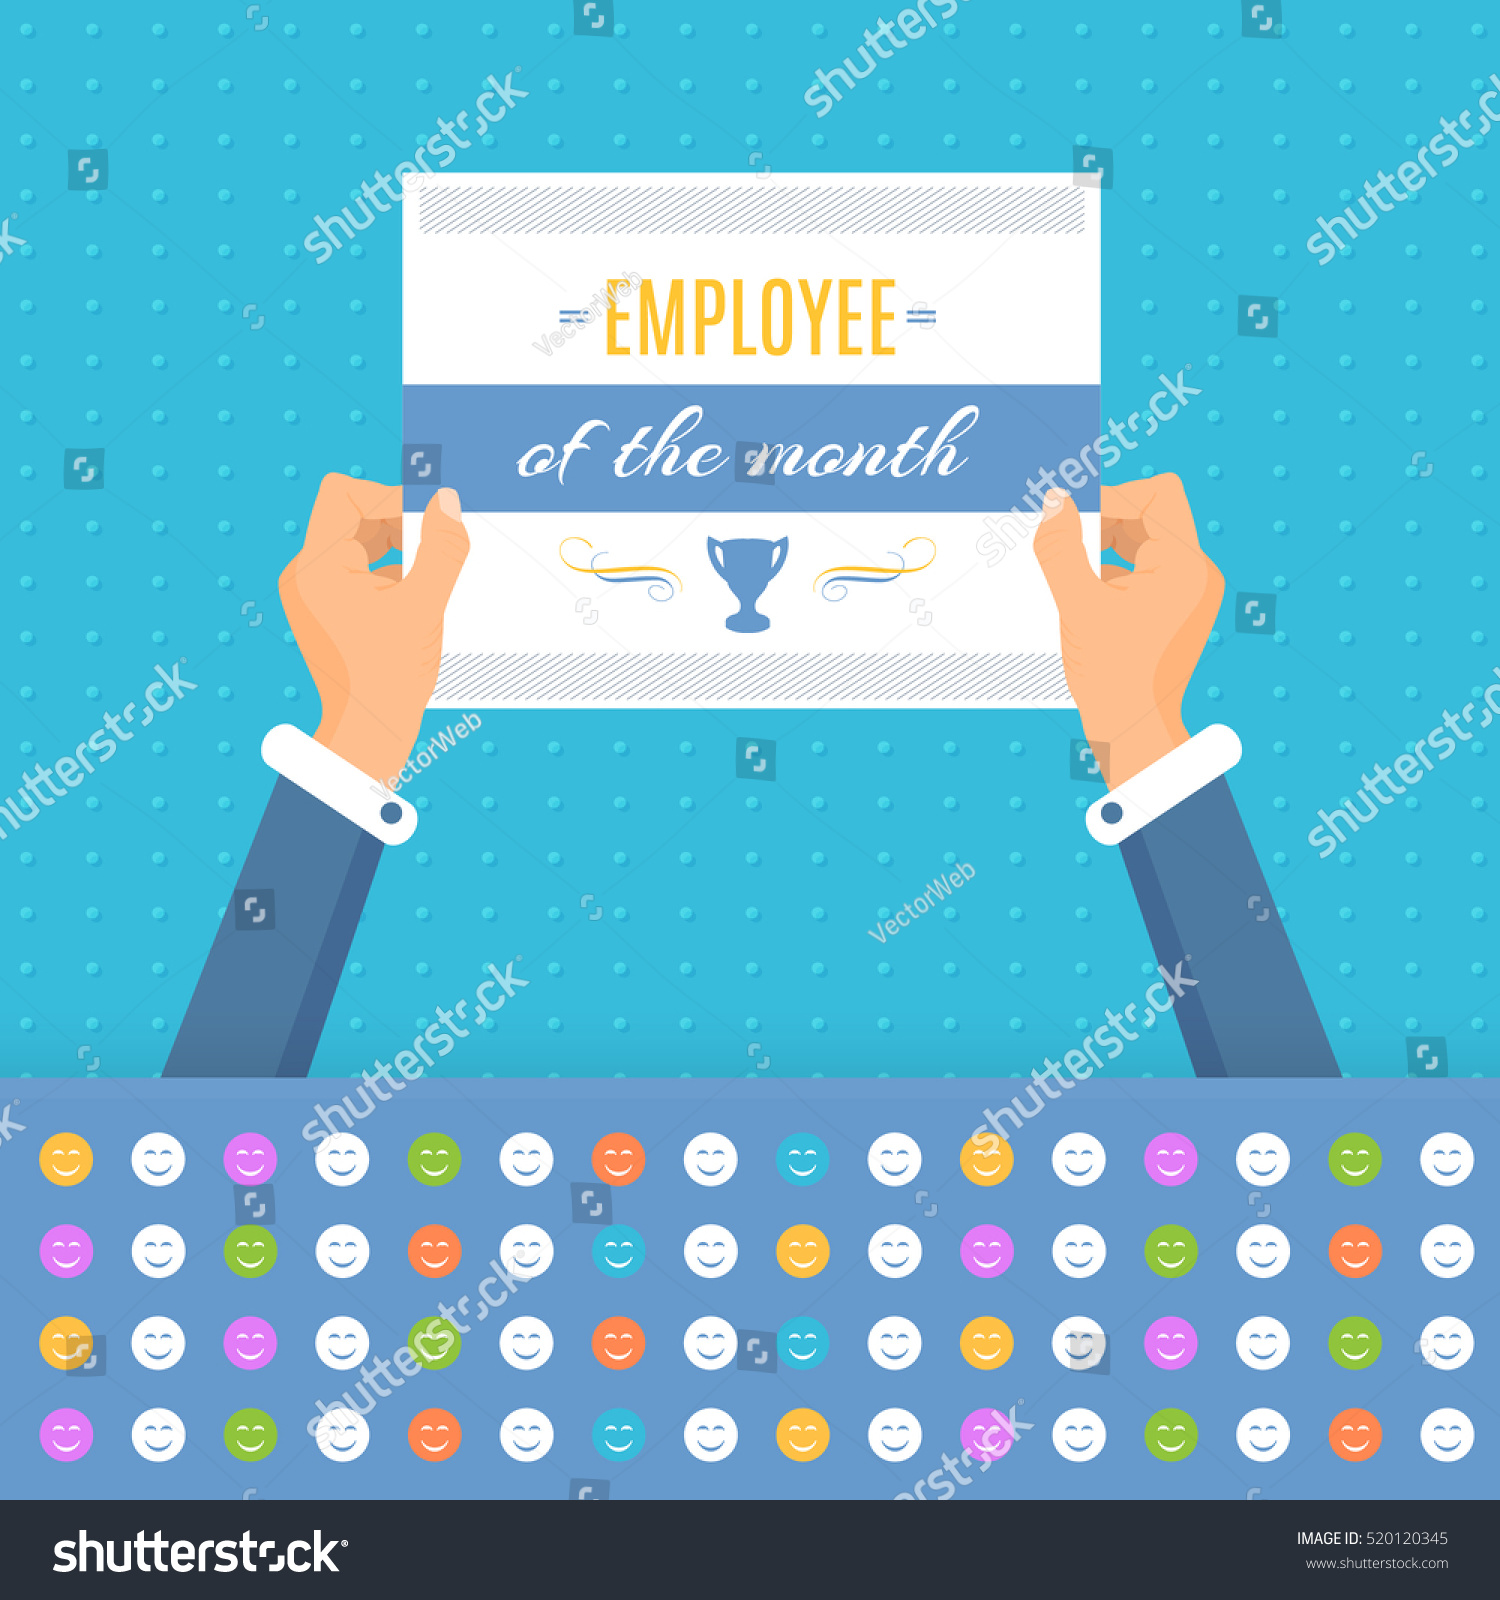 Employee Of The Month Quotes Business Slogans Motivation Quote Text Employee Stock Vector